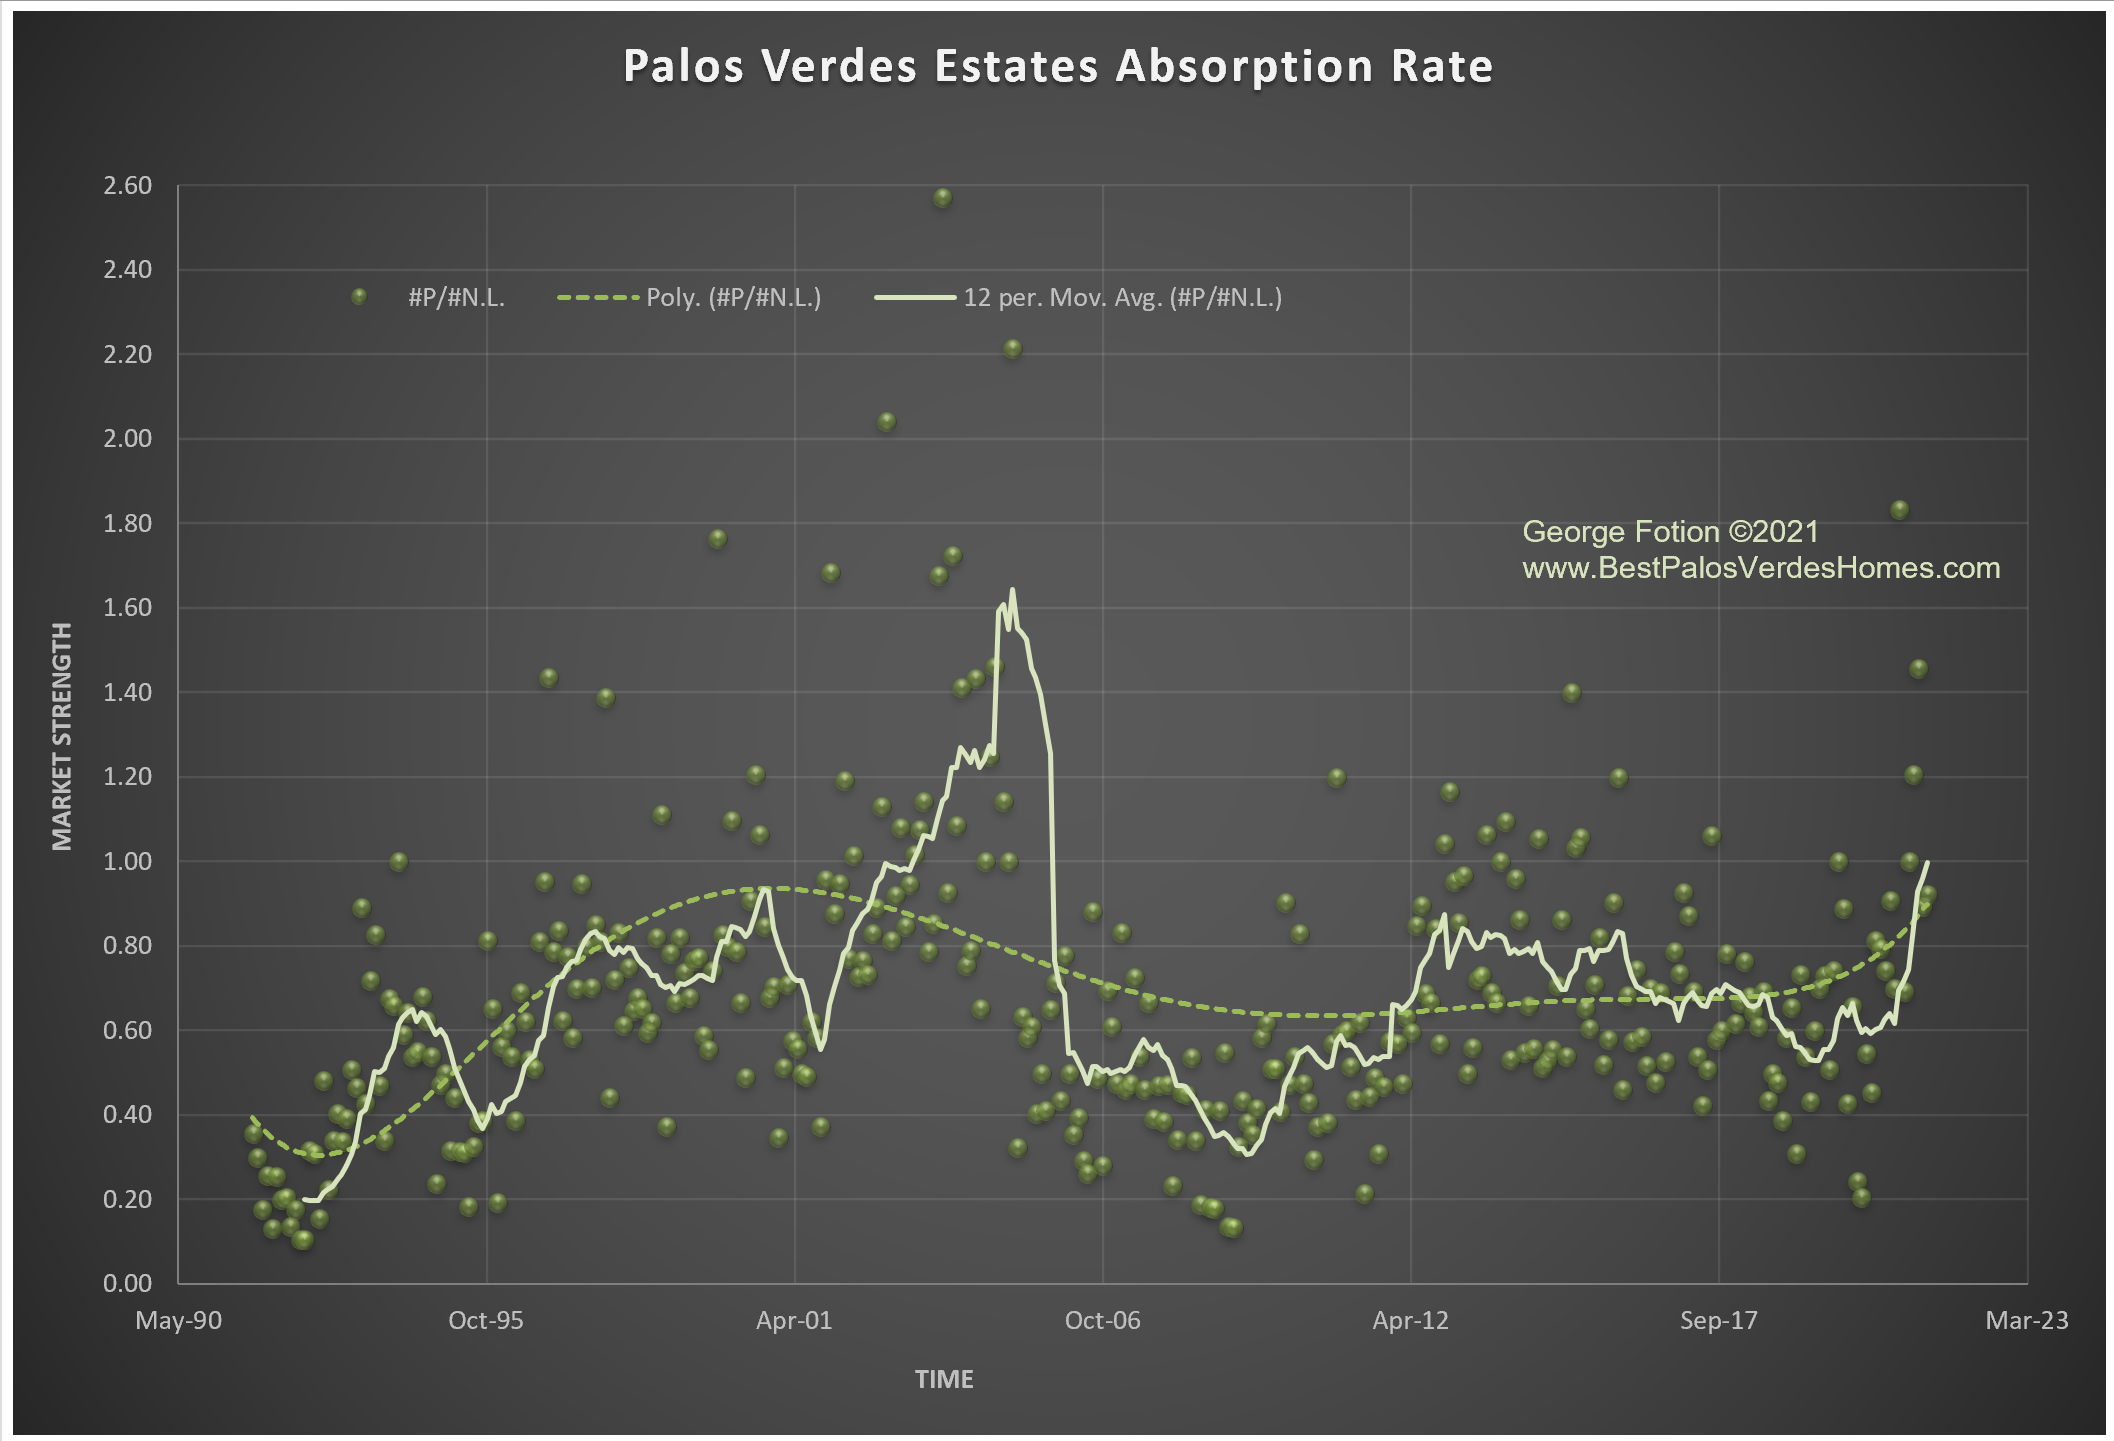 pve absorption rate